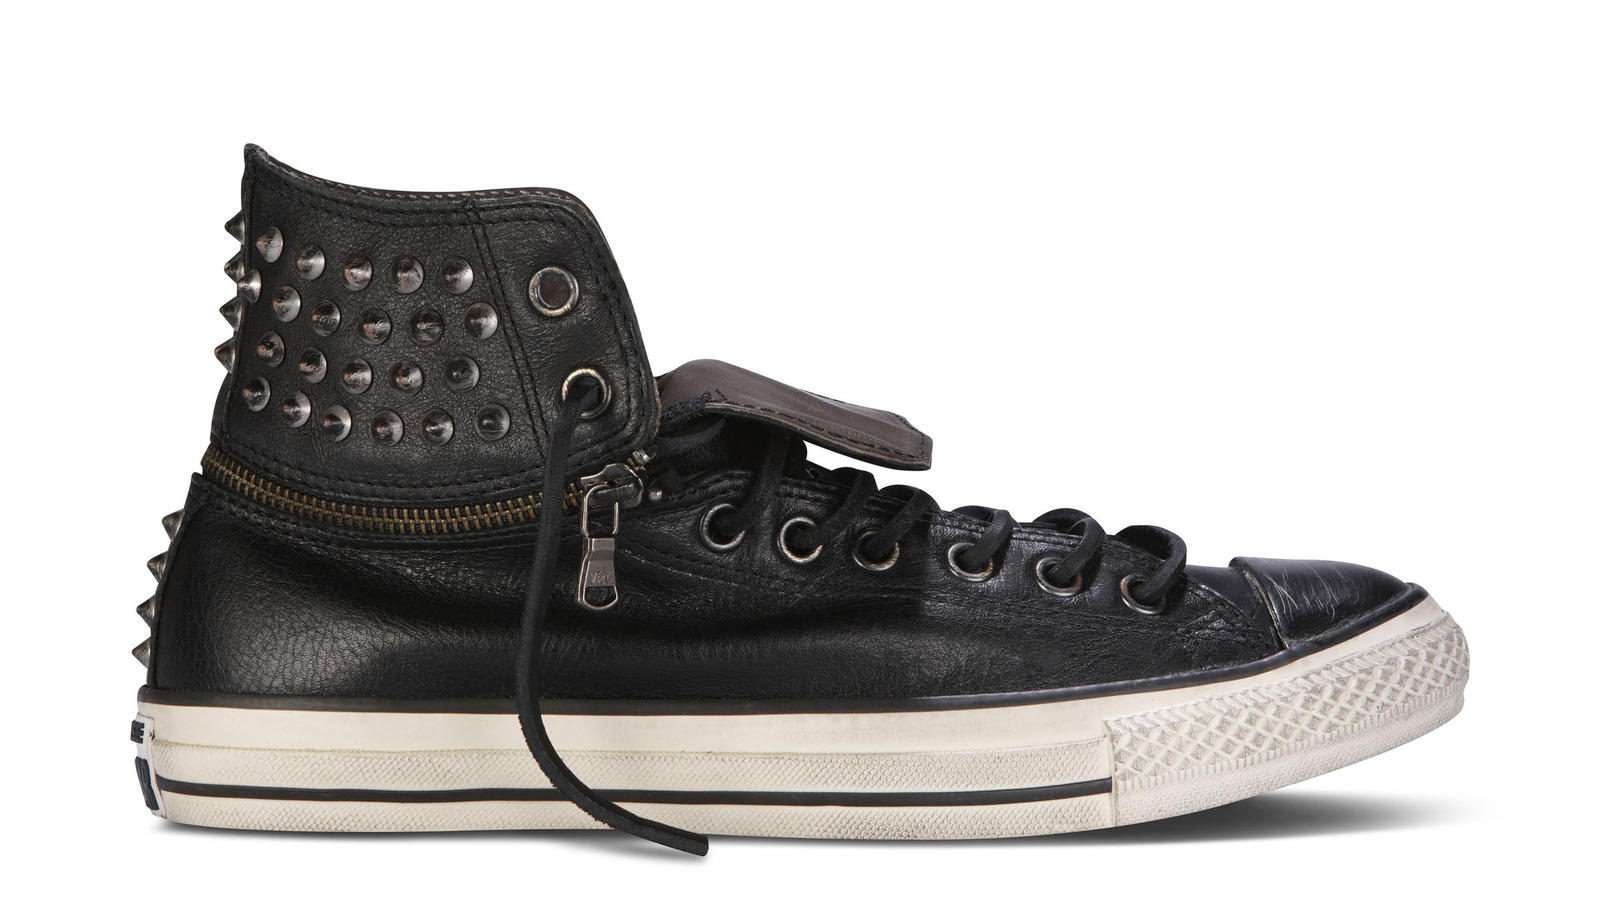 CONVERSE Chuck Taylor All Star Double Zip Fall 2013